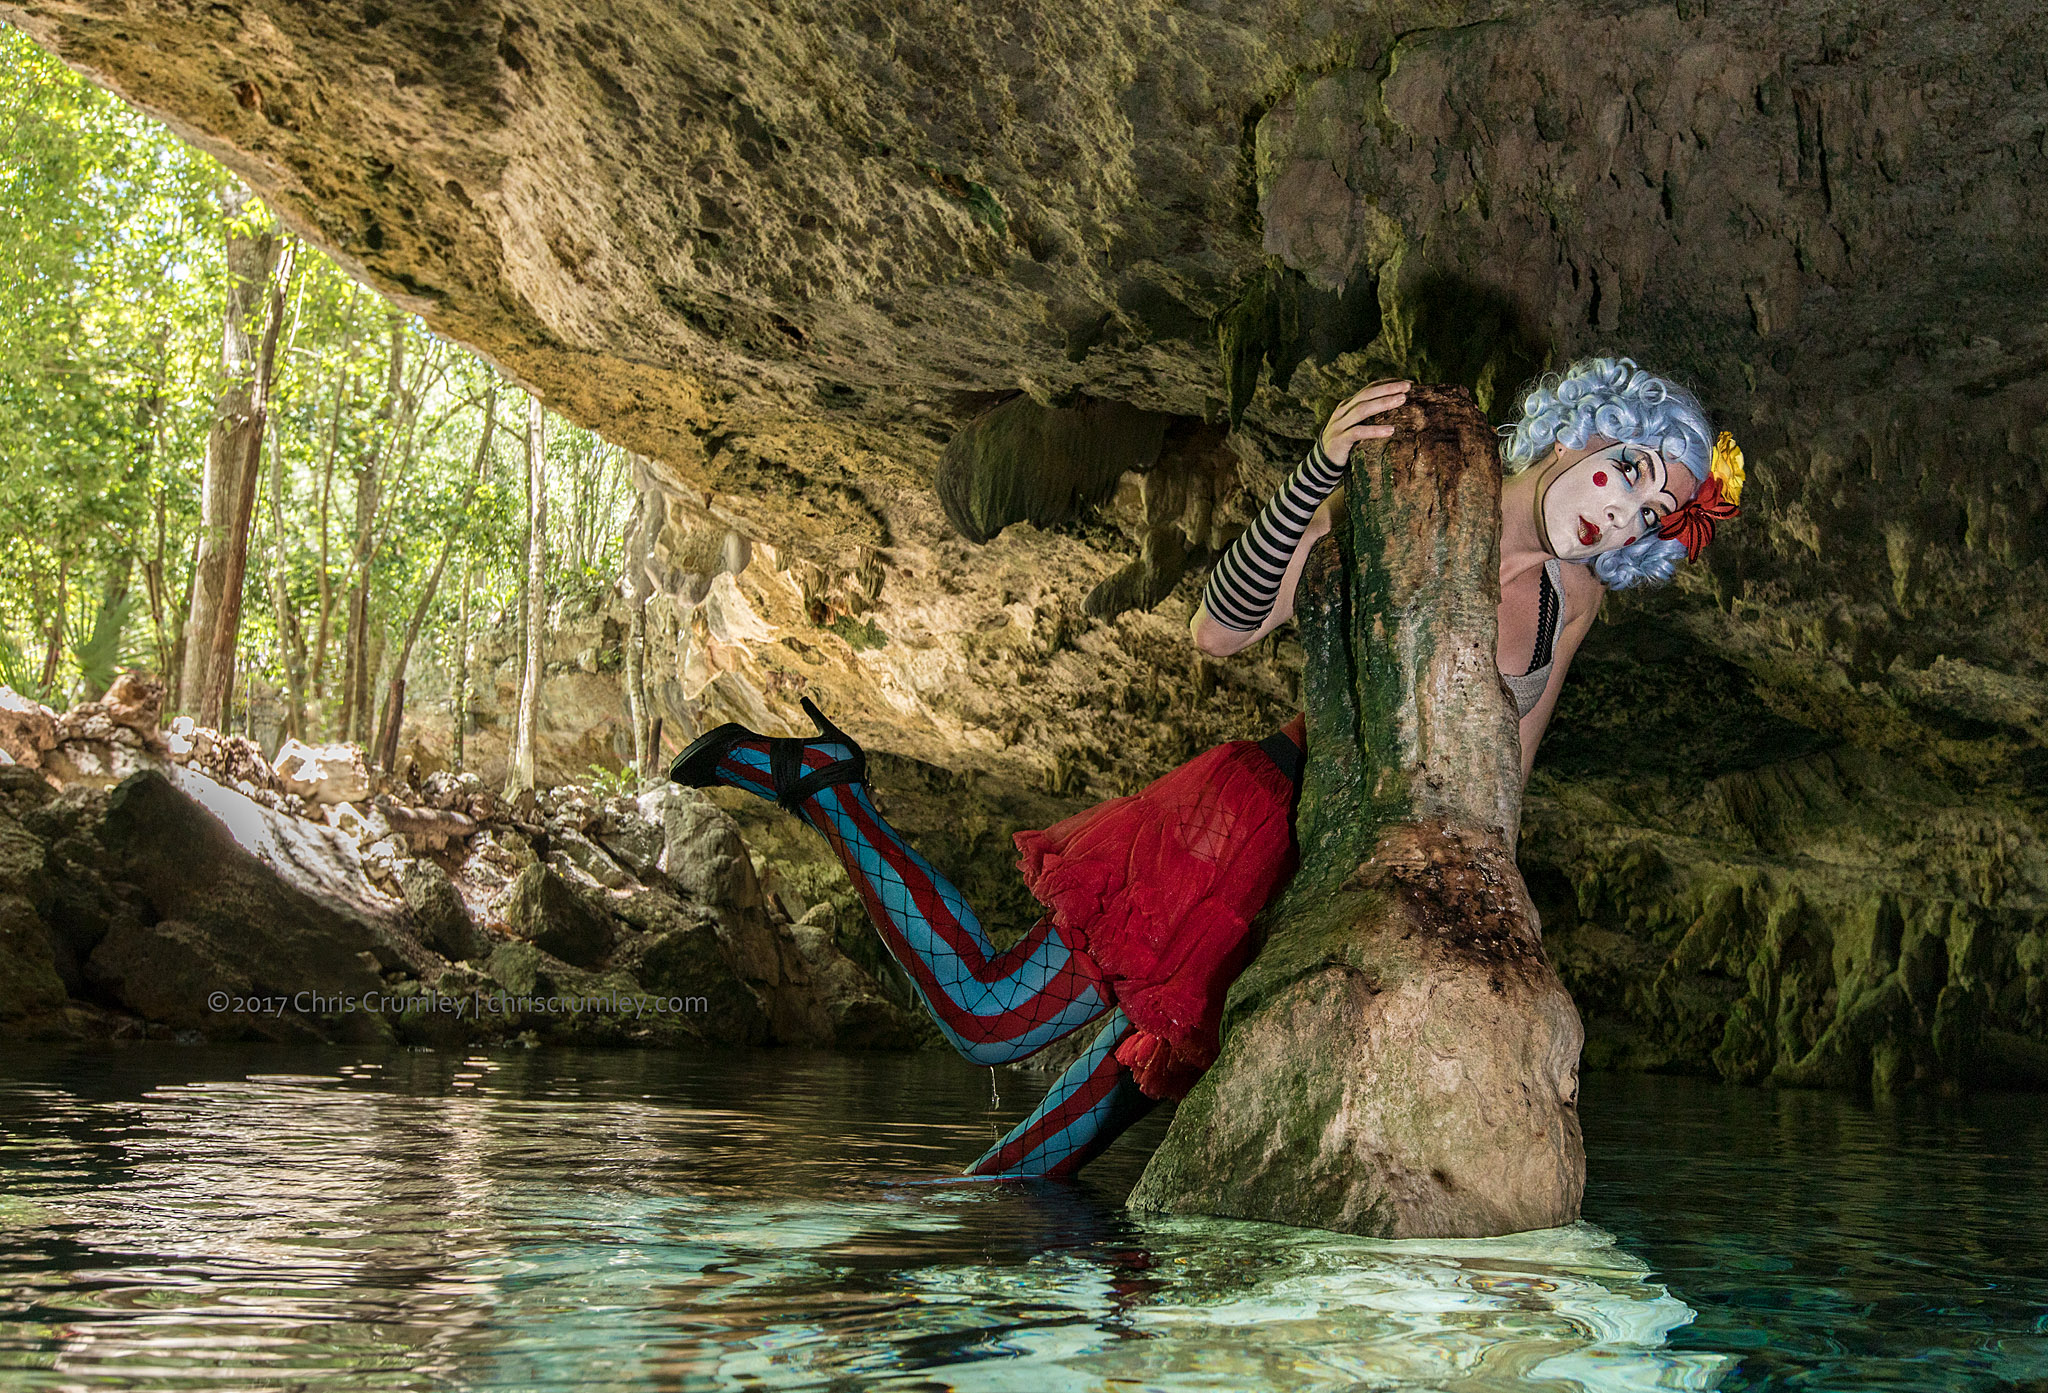 Creative/personal work sessions, Dos Ojos II Cenote